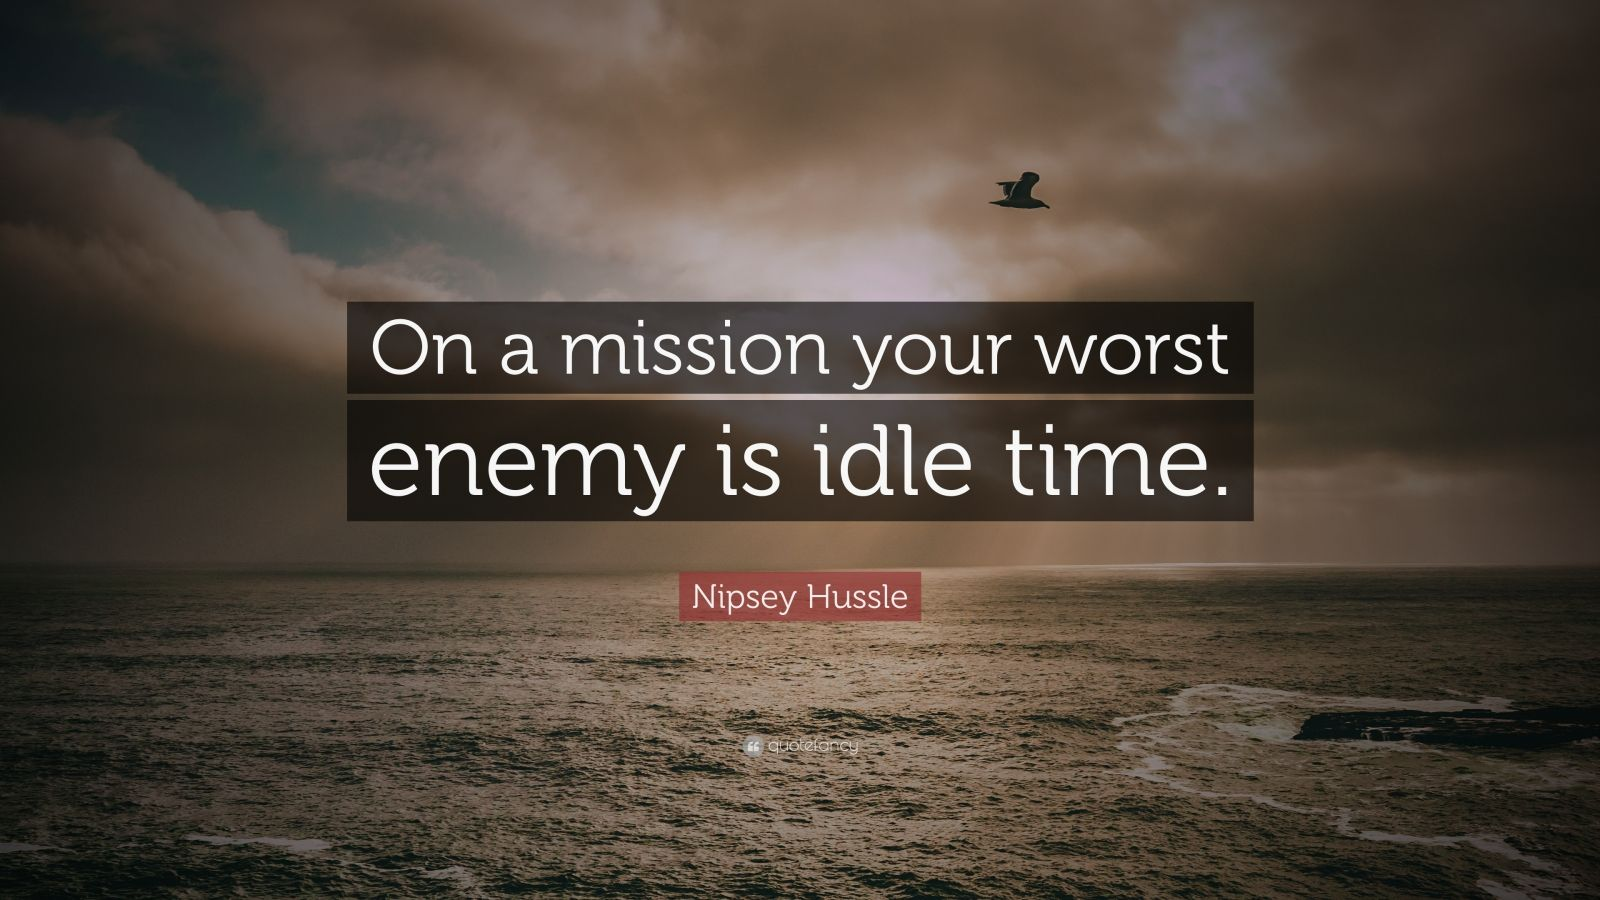 nipsey hussle quote   u201con a mission your worst enemy is